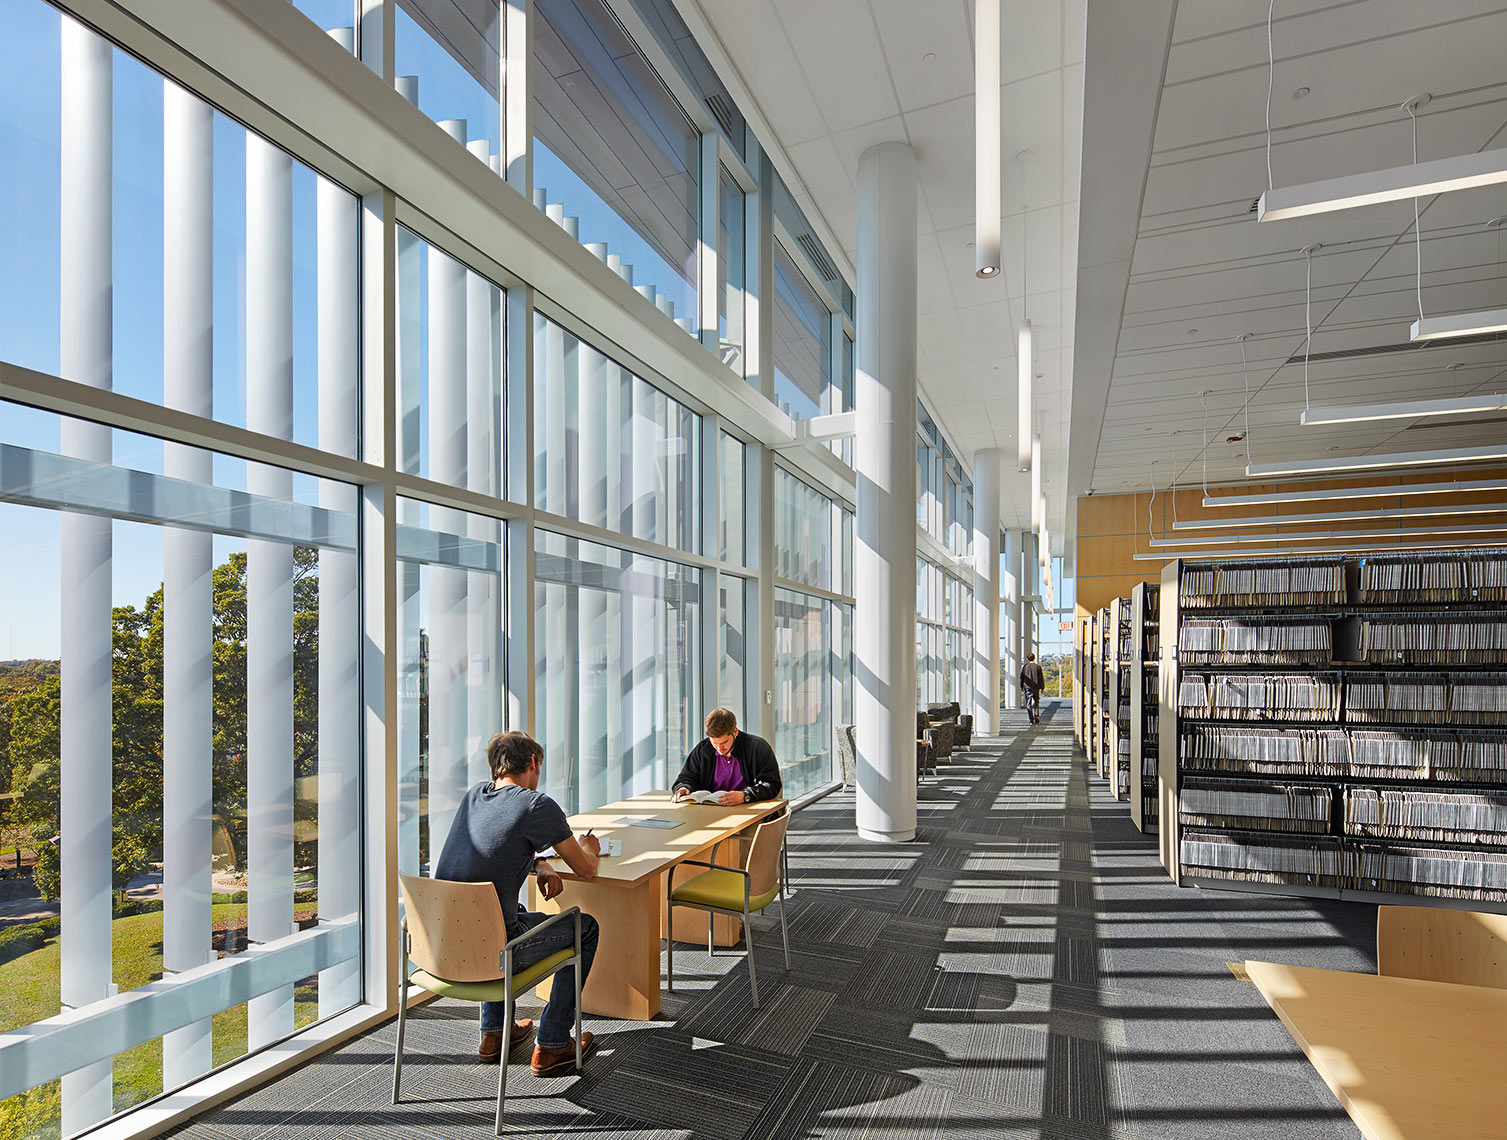 Semans-Library-UNC-School-of-the-Arts-5688